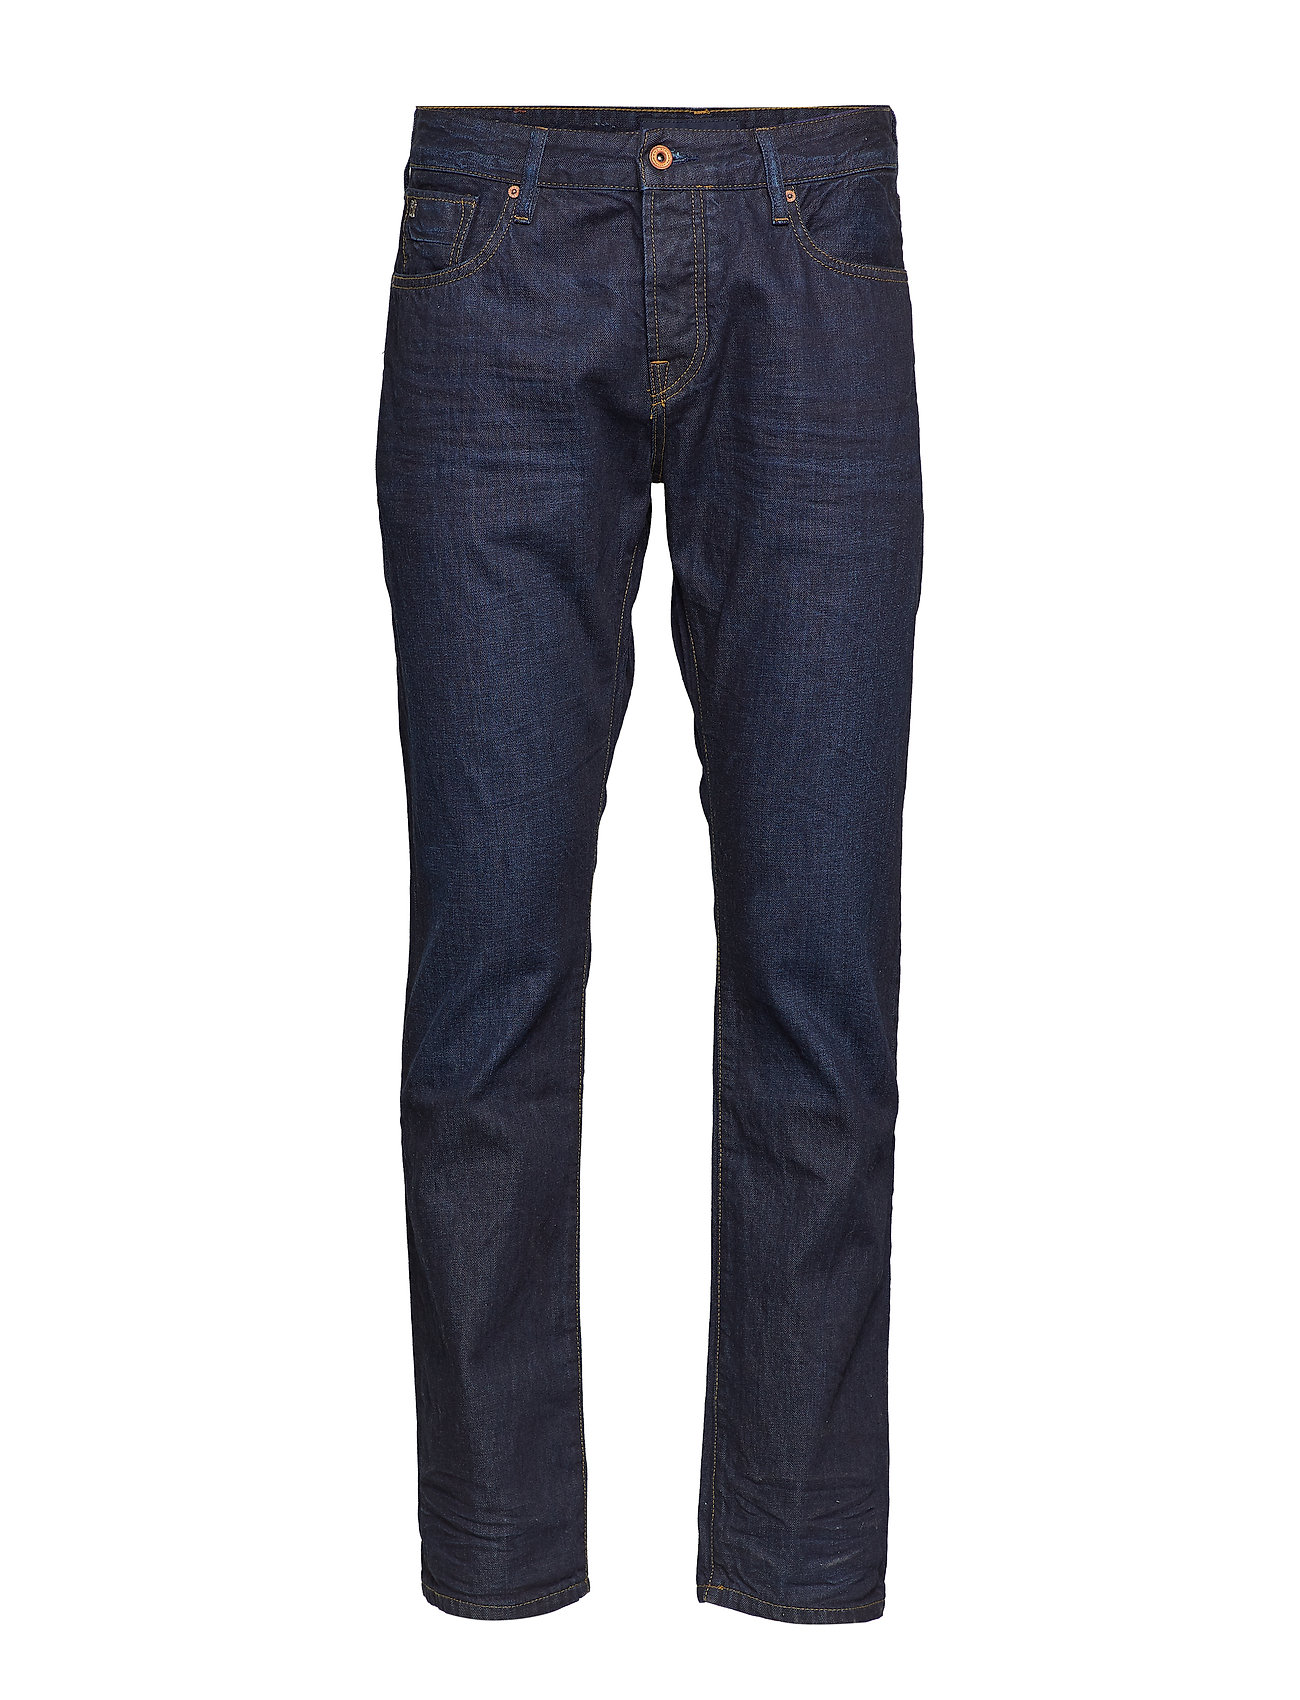 Scotch & Soda NOS - Ralston - Touchdown - 48 DENIM